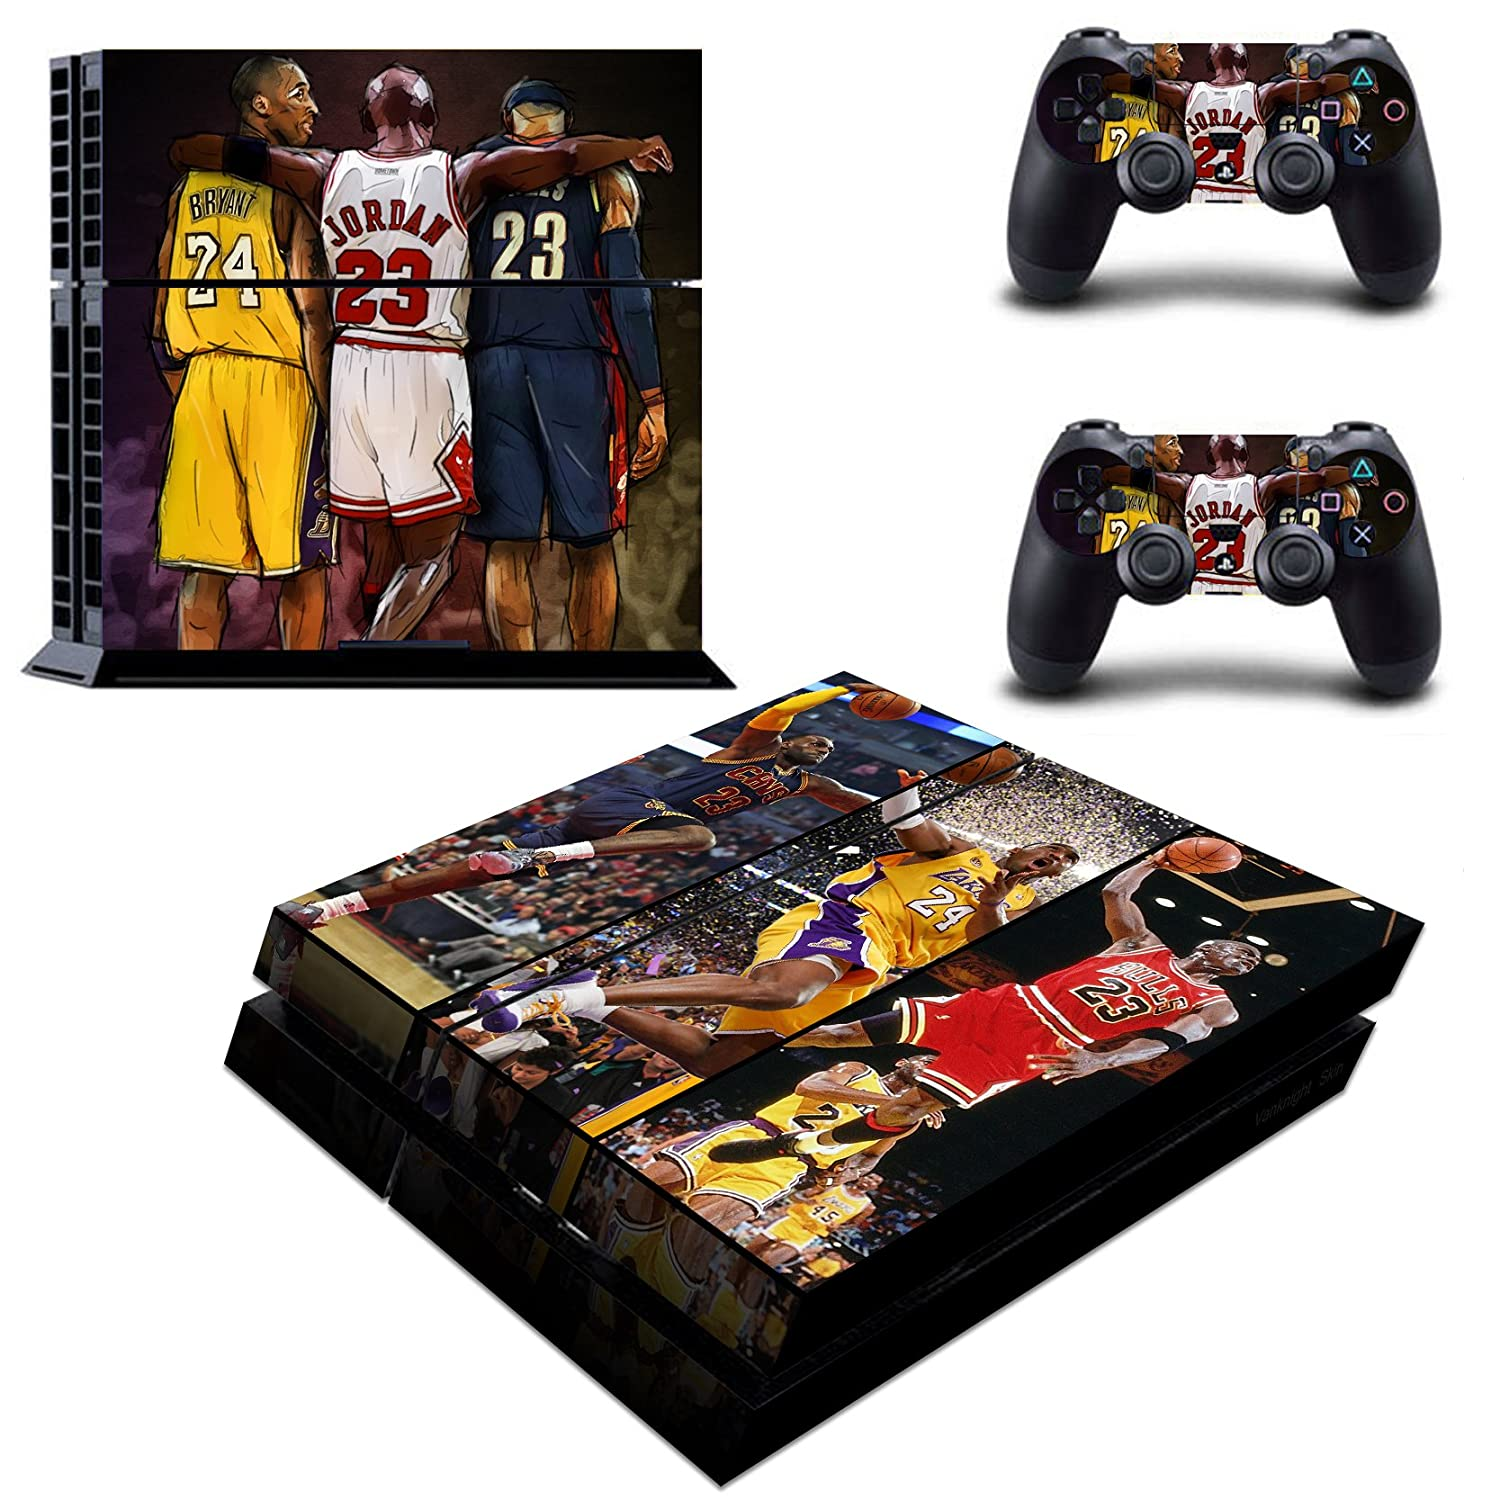 Vanknight Colorado Springs Mall Opening large release sale Vinyl Decal Skin Stickers Playstaion PS4 for Controlle